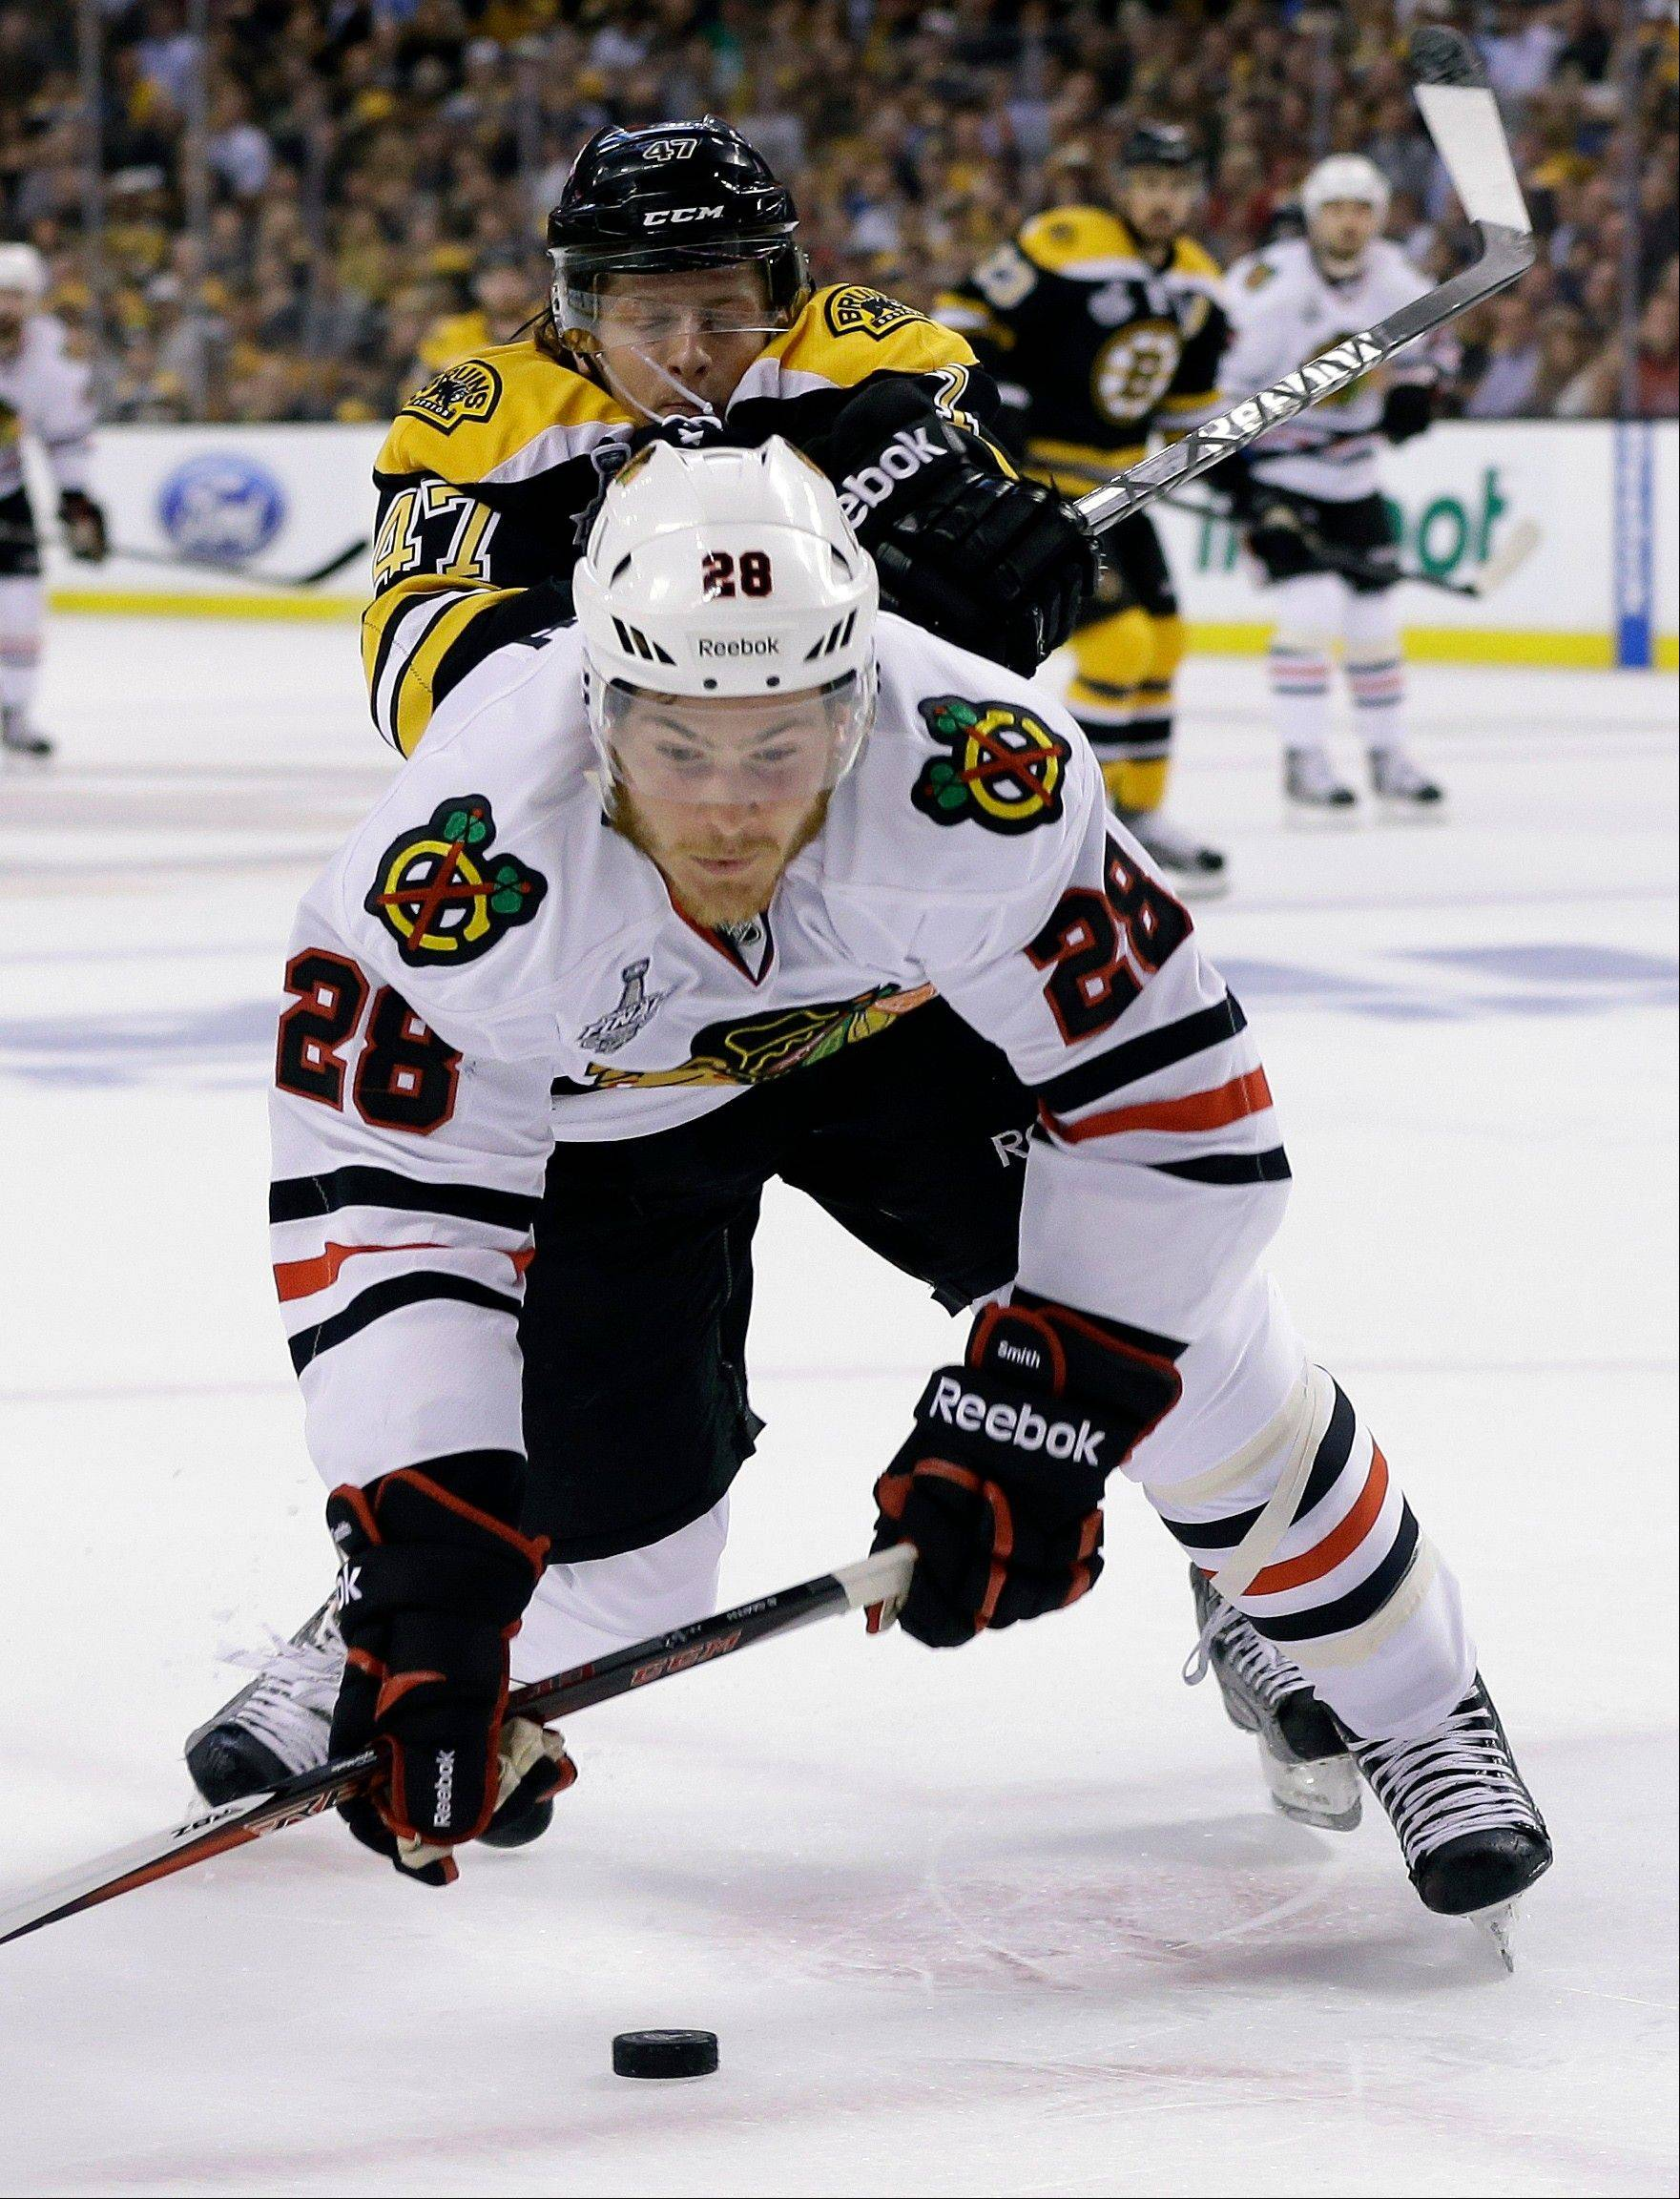 Ben Smith, who got a chance to play in Game 3 of the Stanley Cup Final, will get a good look when Blackhawks training camp opens in September.